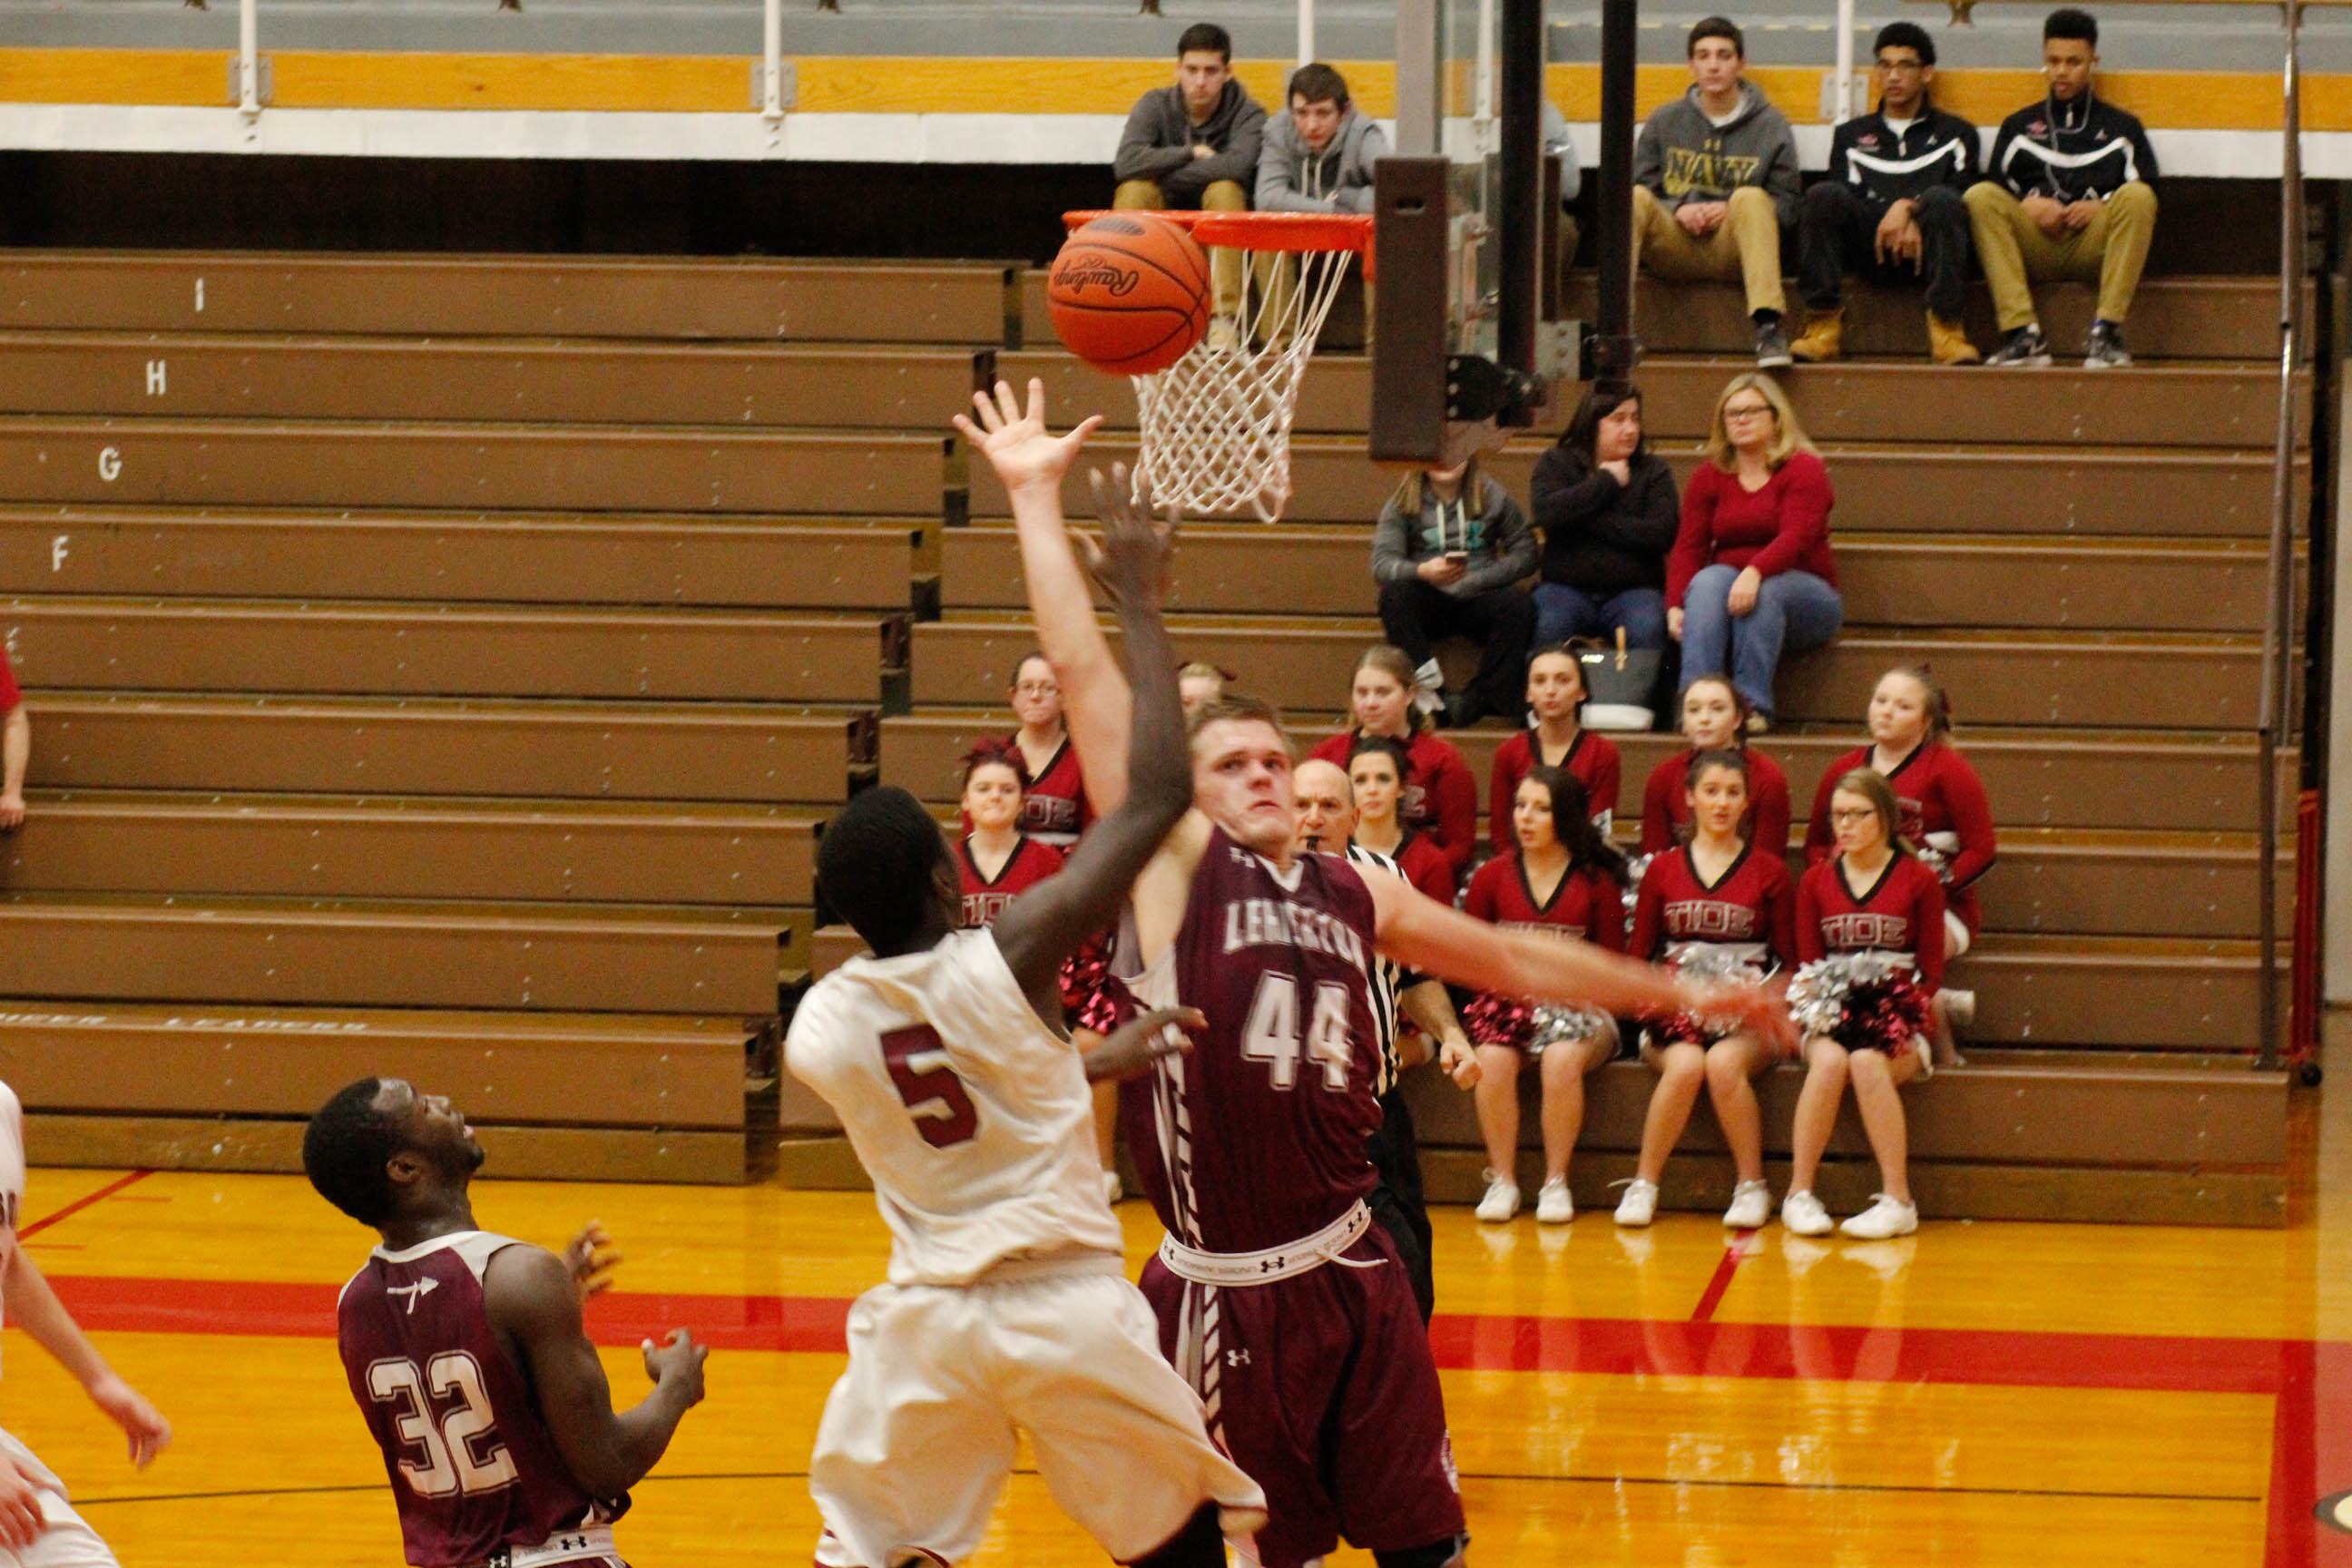 Lehighton2016/20160108-_MG_5181.jpg